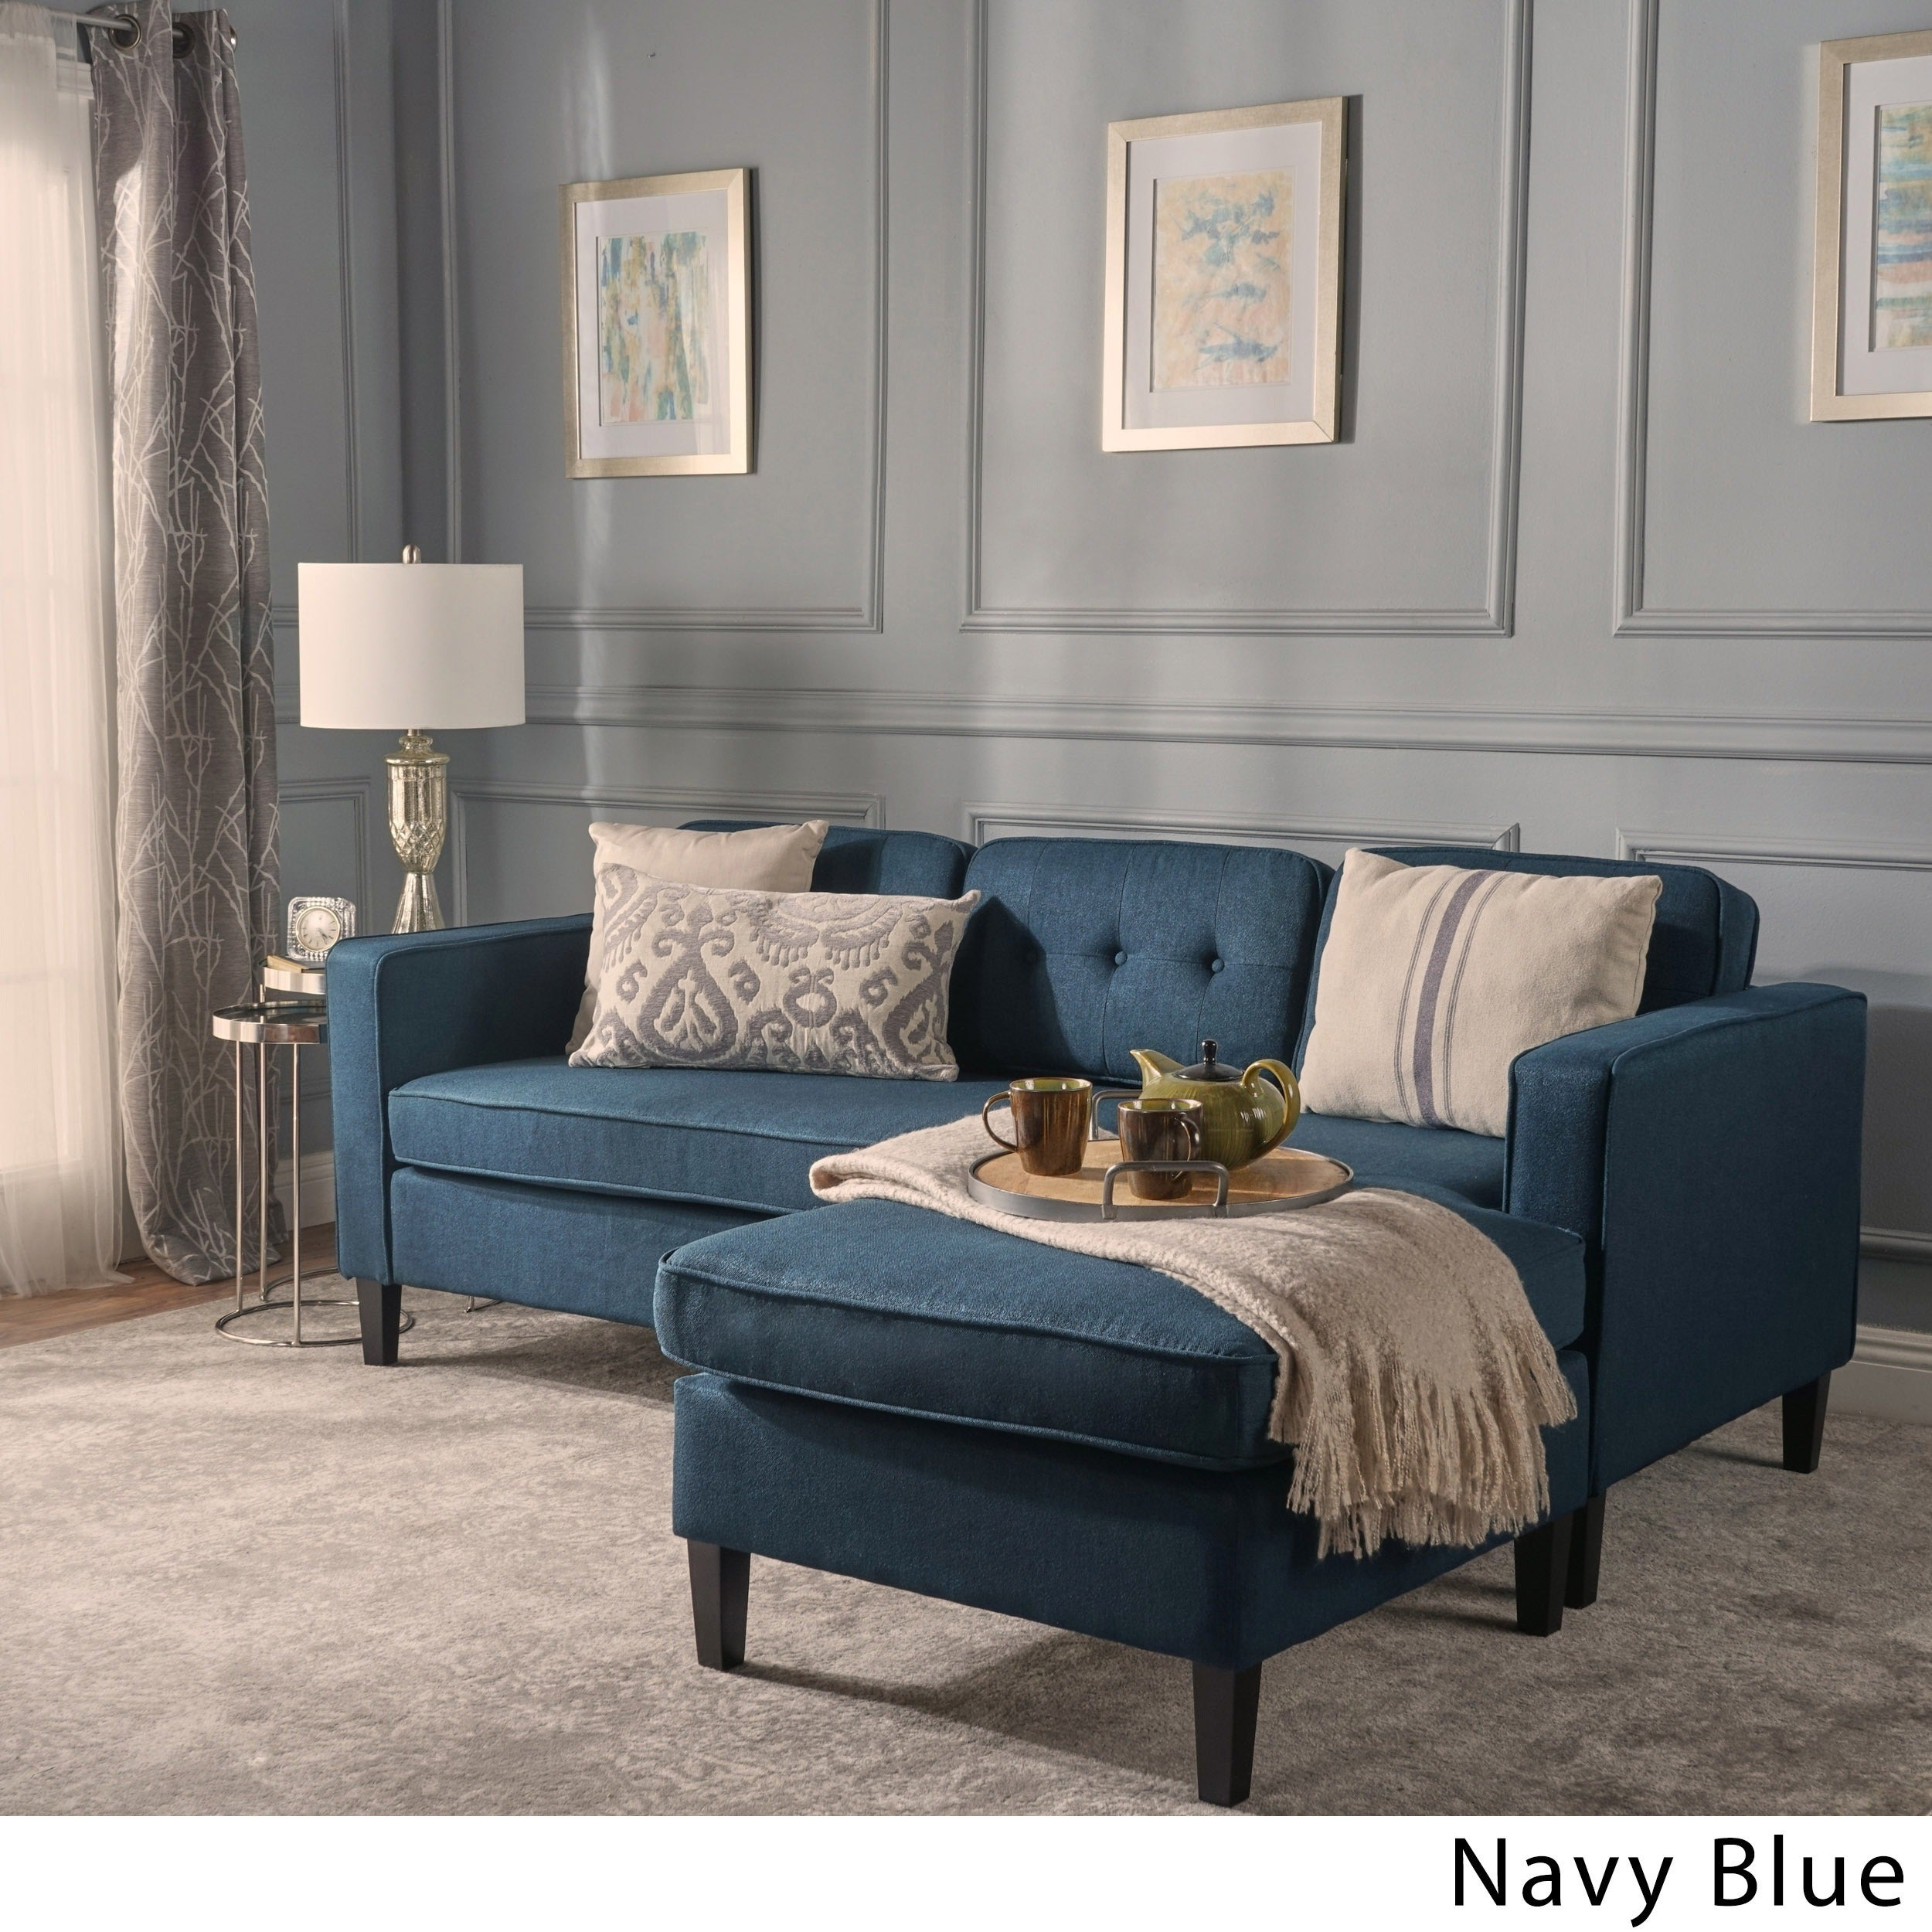 sofa leather clubanfi ideas unique blue navy sectional chaise photos decorating of with beautiful chesterfield com bed couch